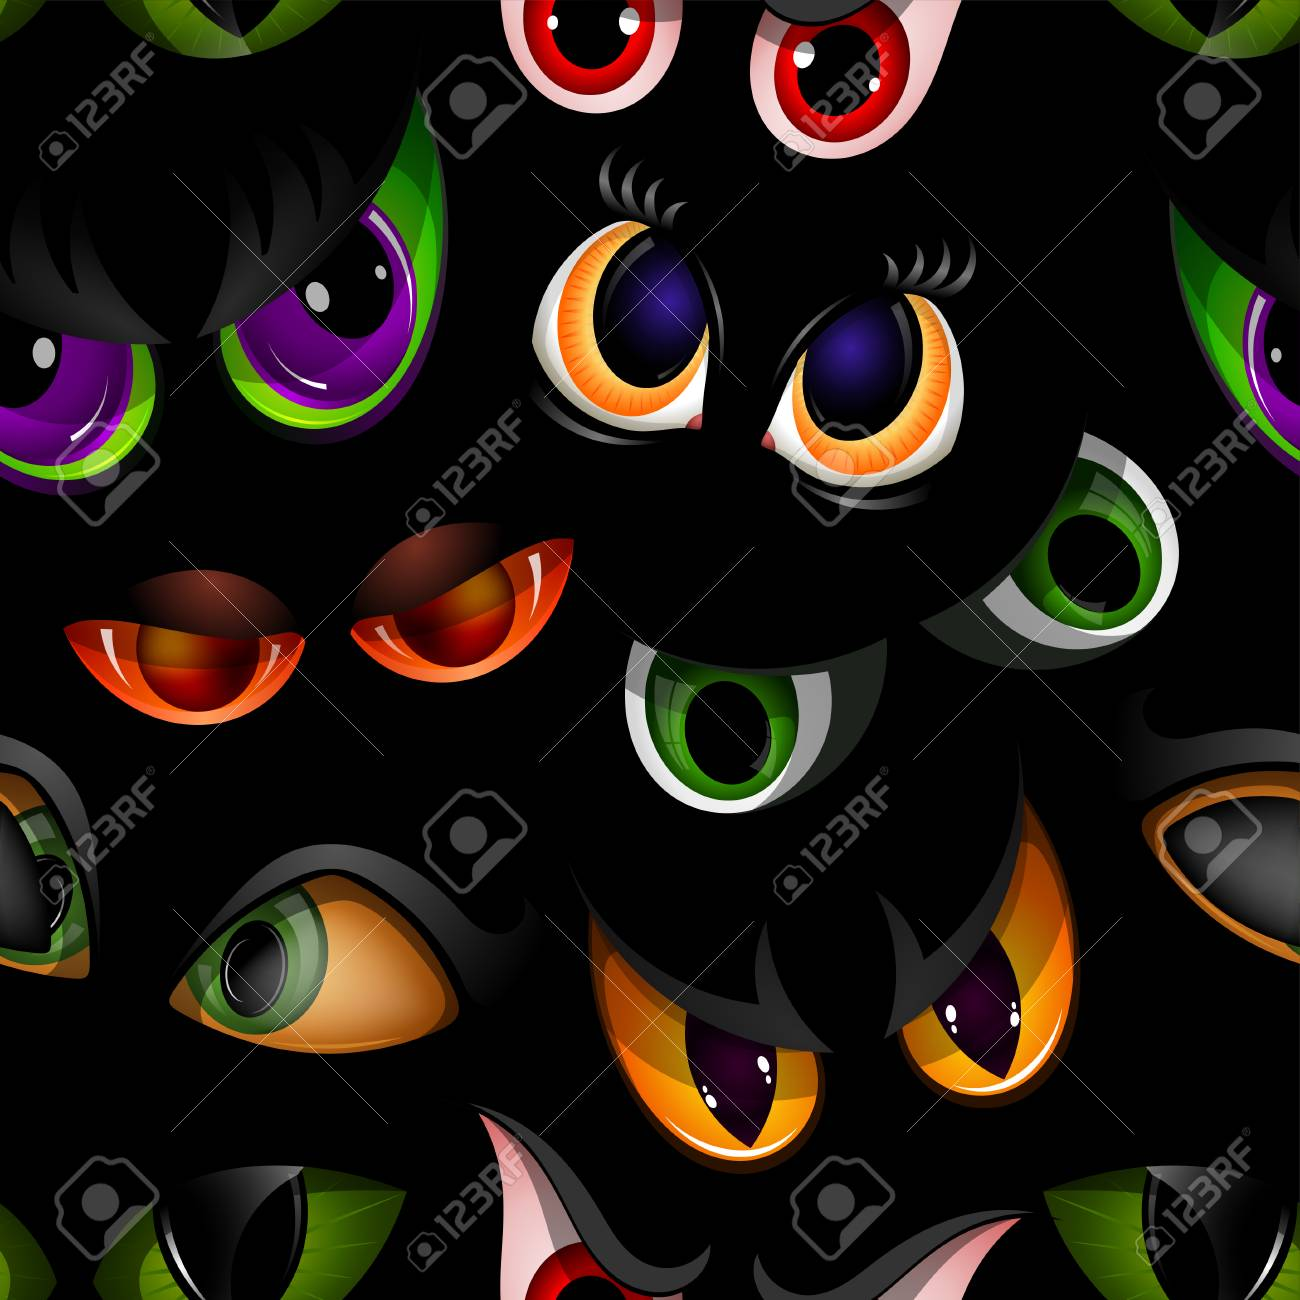 Cartoon vector eyes beast devil monster animals eyeballs of angry or scary expressions evil eyebrow and eyelashes on face scared snake or dracula vampire animal eyesight seamless pattern background. - 96069127